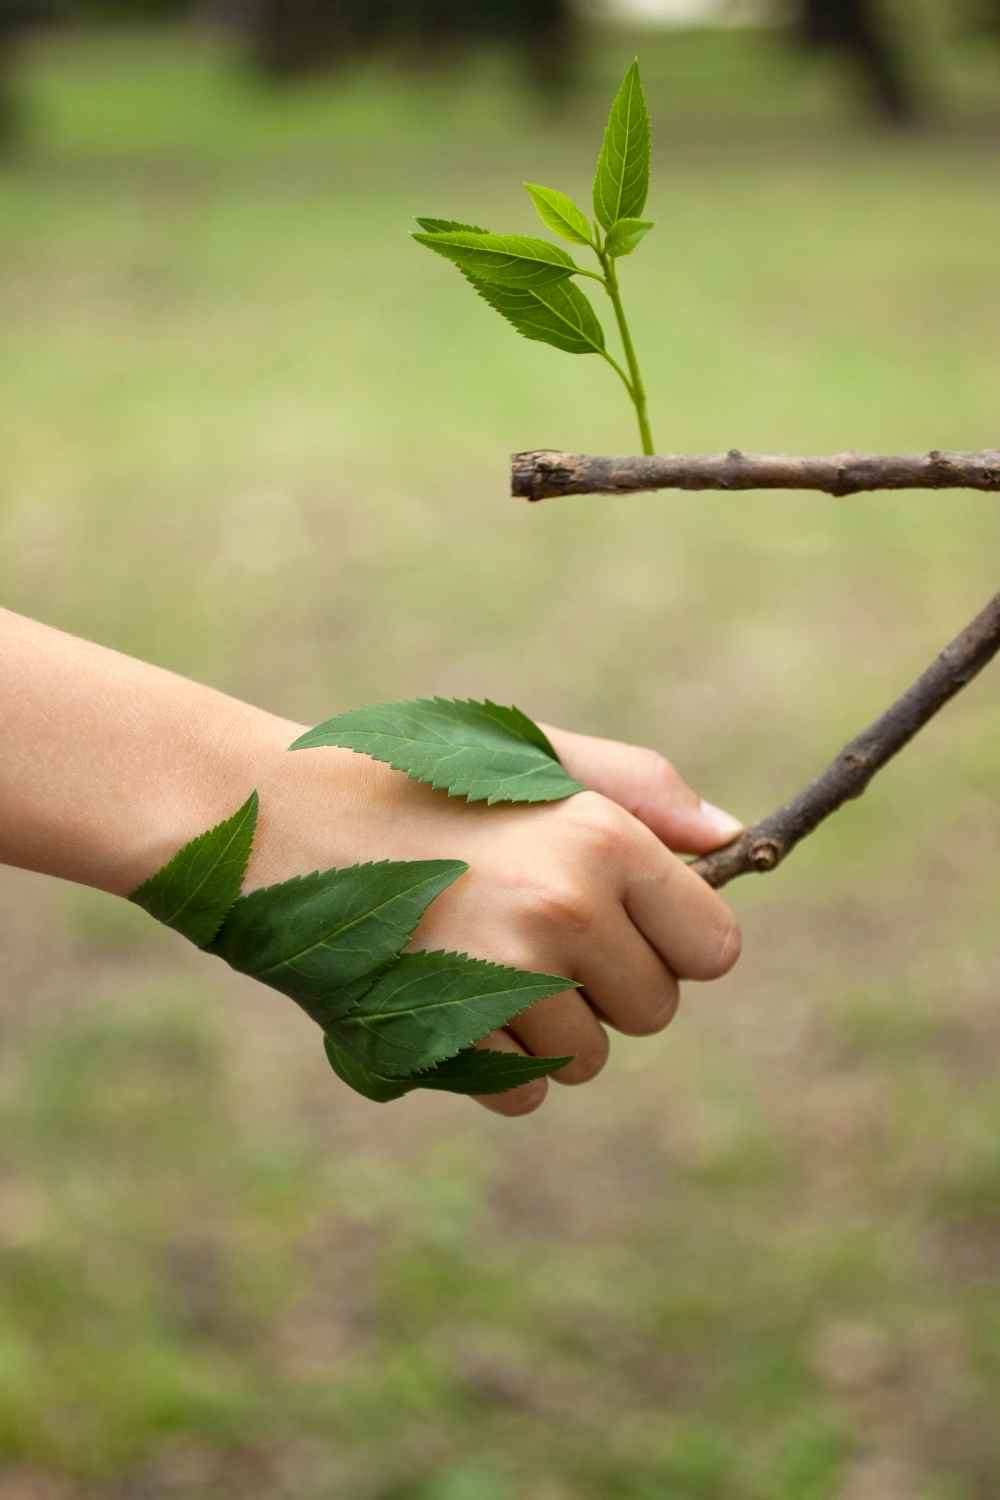 a hand holding a tree branch